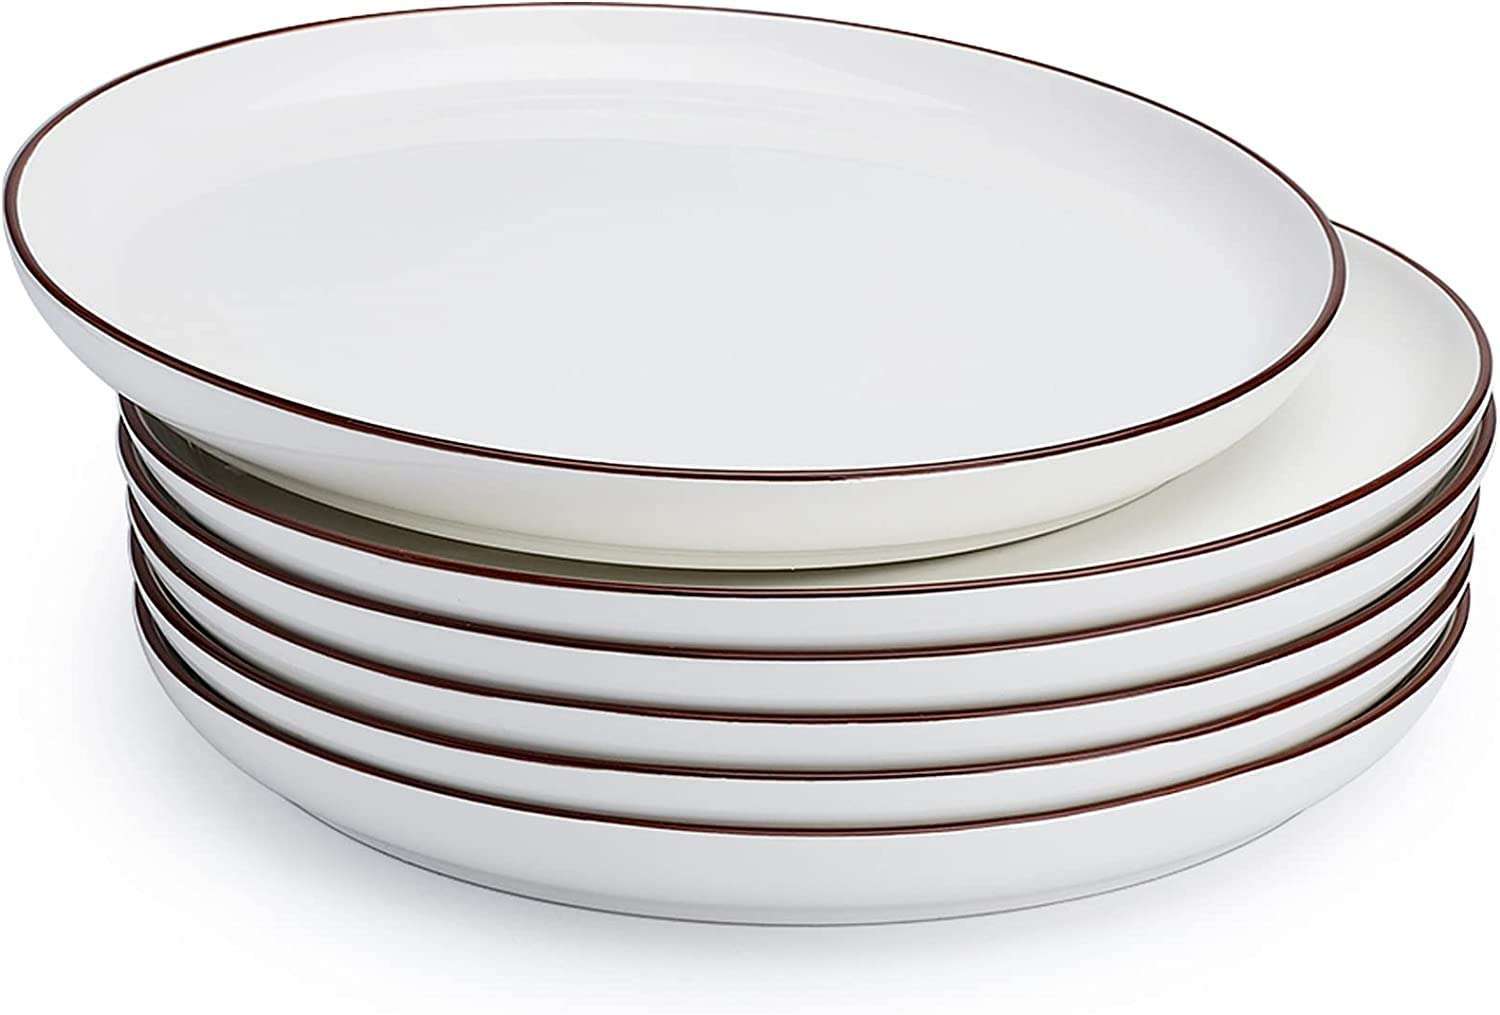 Sweese 164.001 Dinner Plates 10 - Max 47% Popular overseas OFF Porcelain Serving Inches Salad